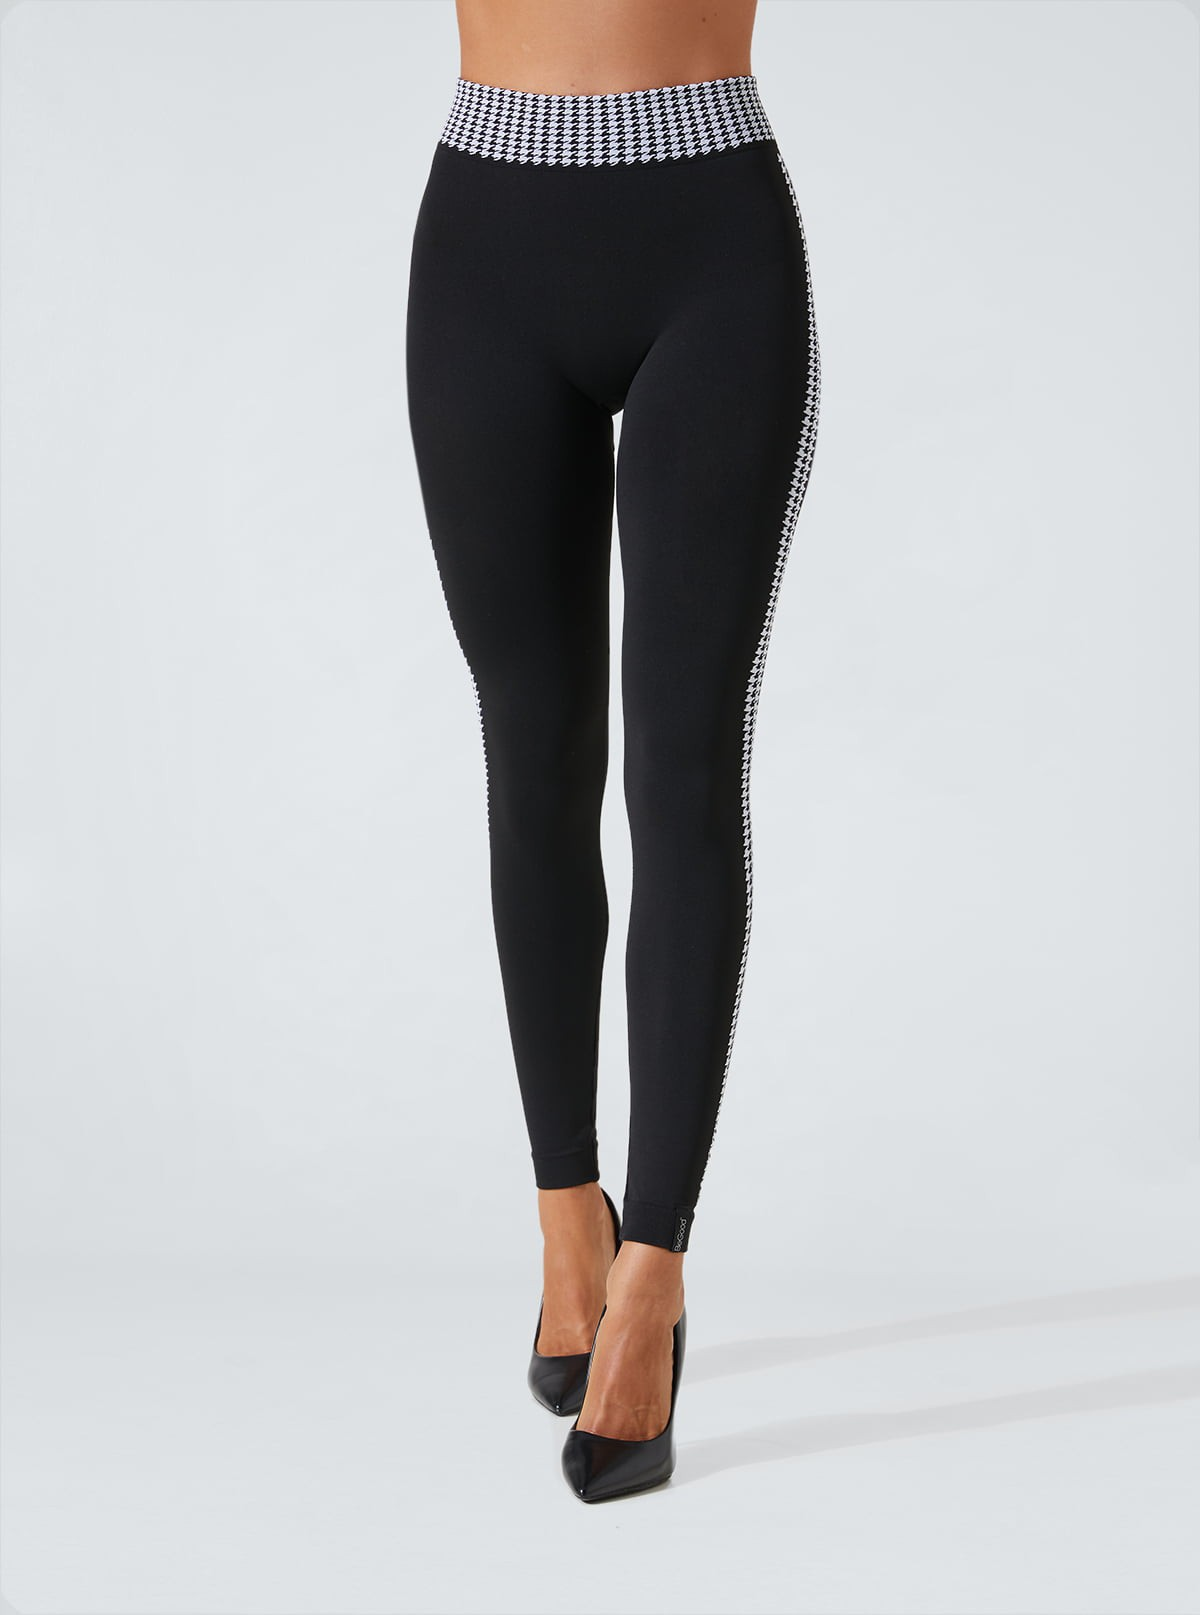 Superslim, draining and hydrating leggings with houndstooth inserts